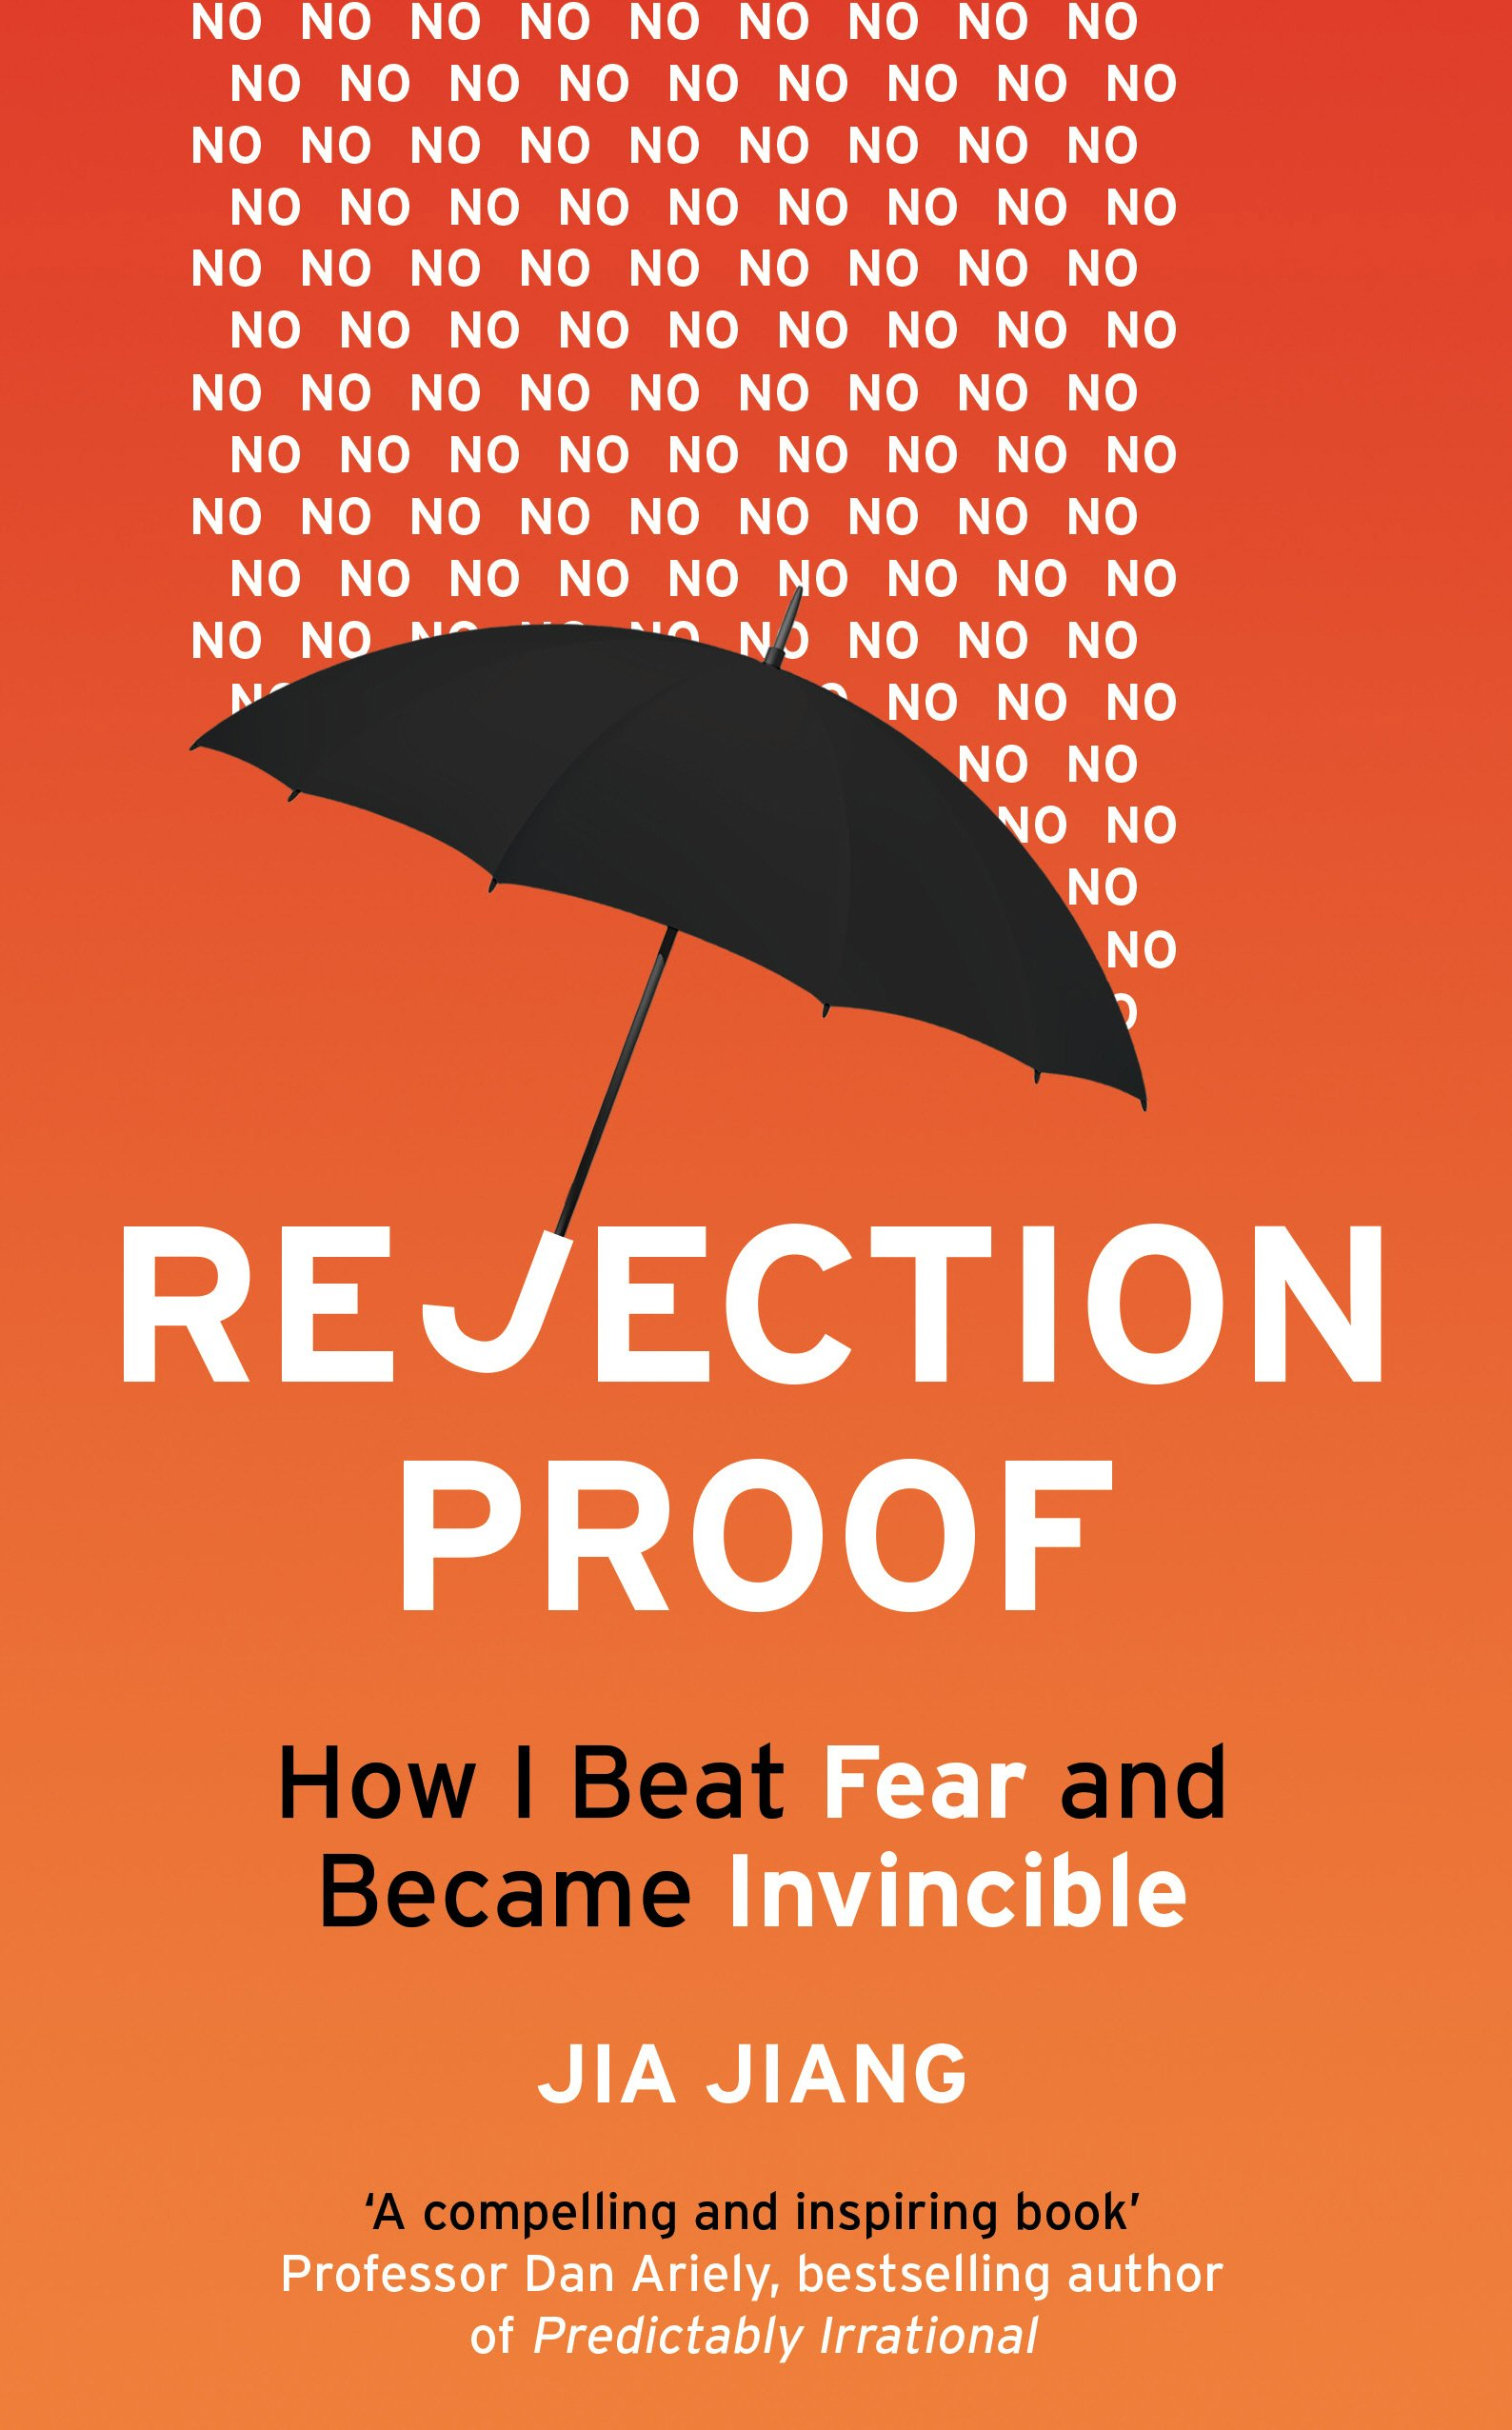 Rejection Proof: How I Beat Fear and Became Invincible: Amazon.co.uk: Jia  Jiang: 8601423622088: Books